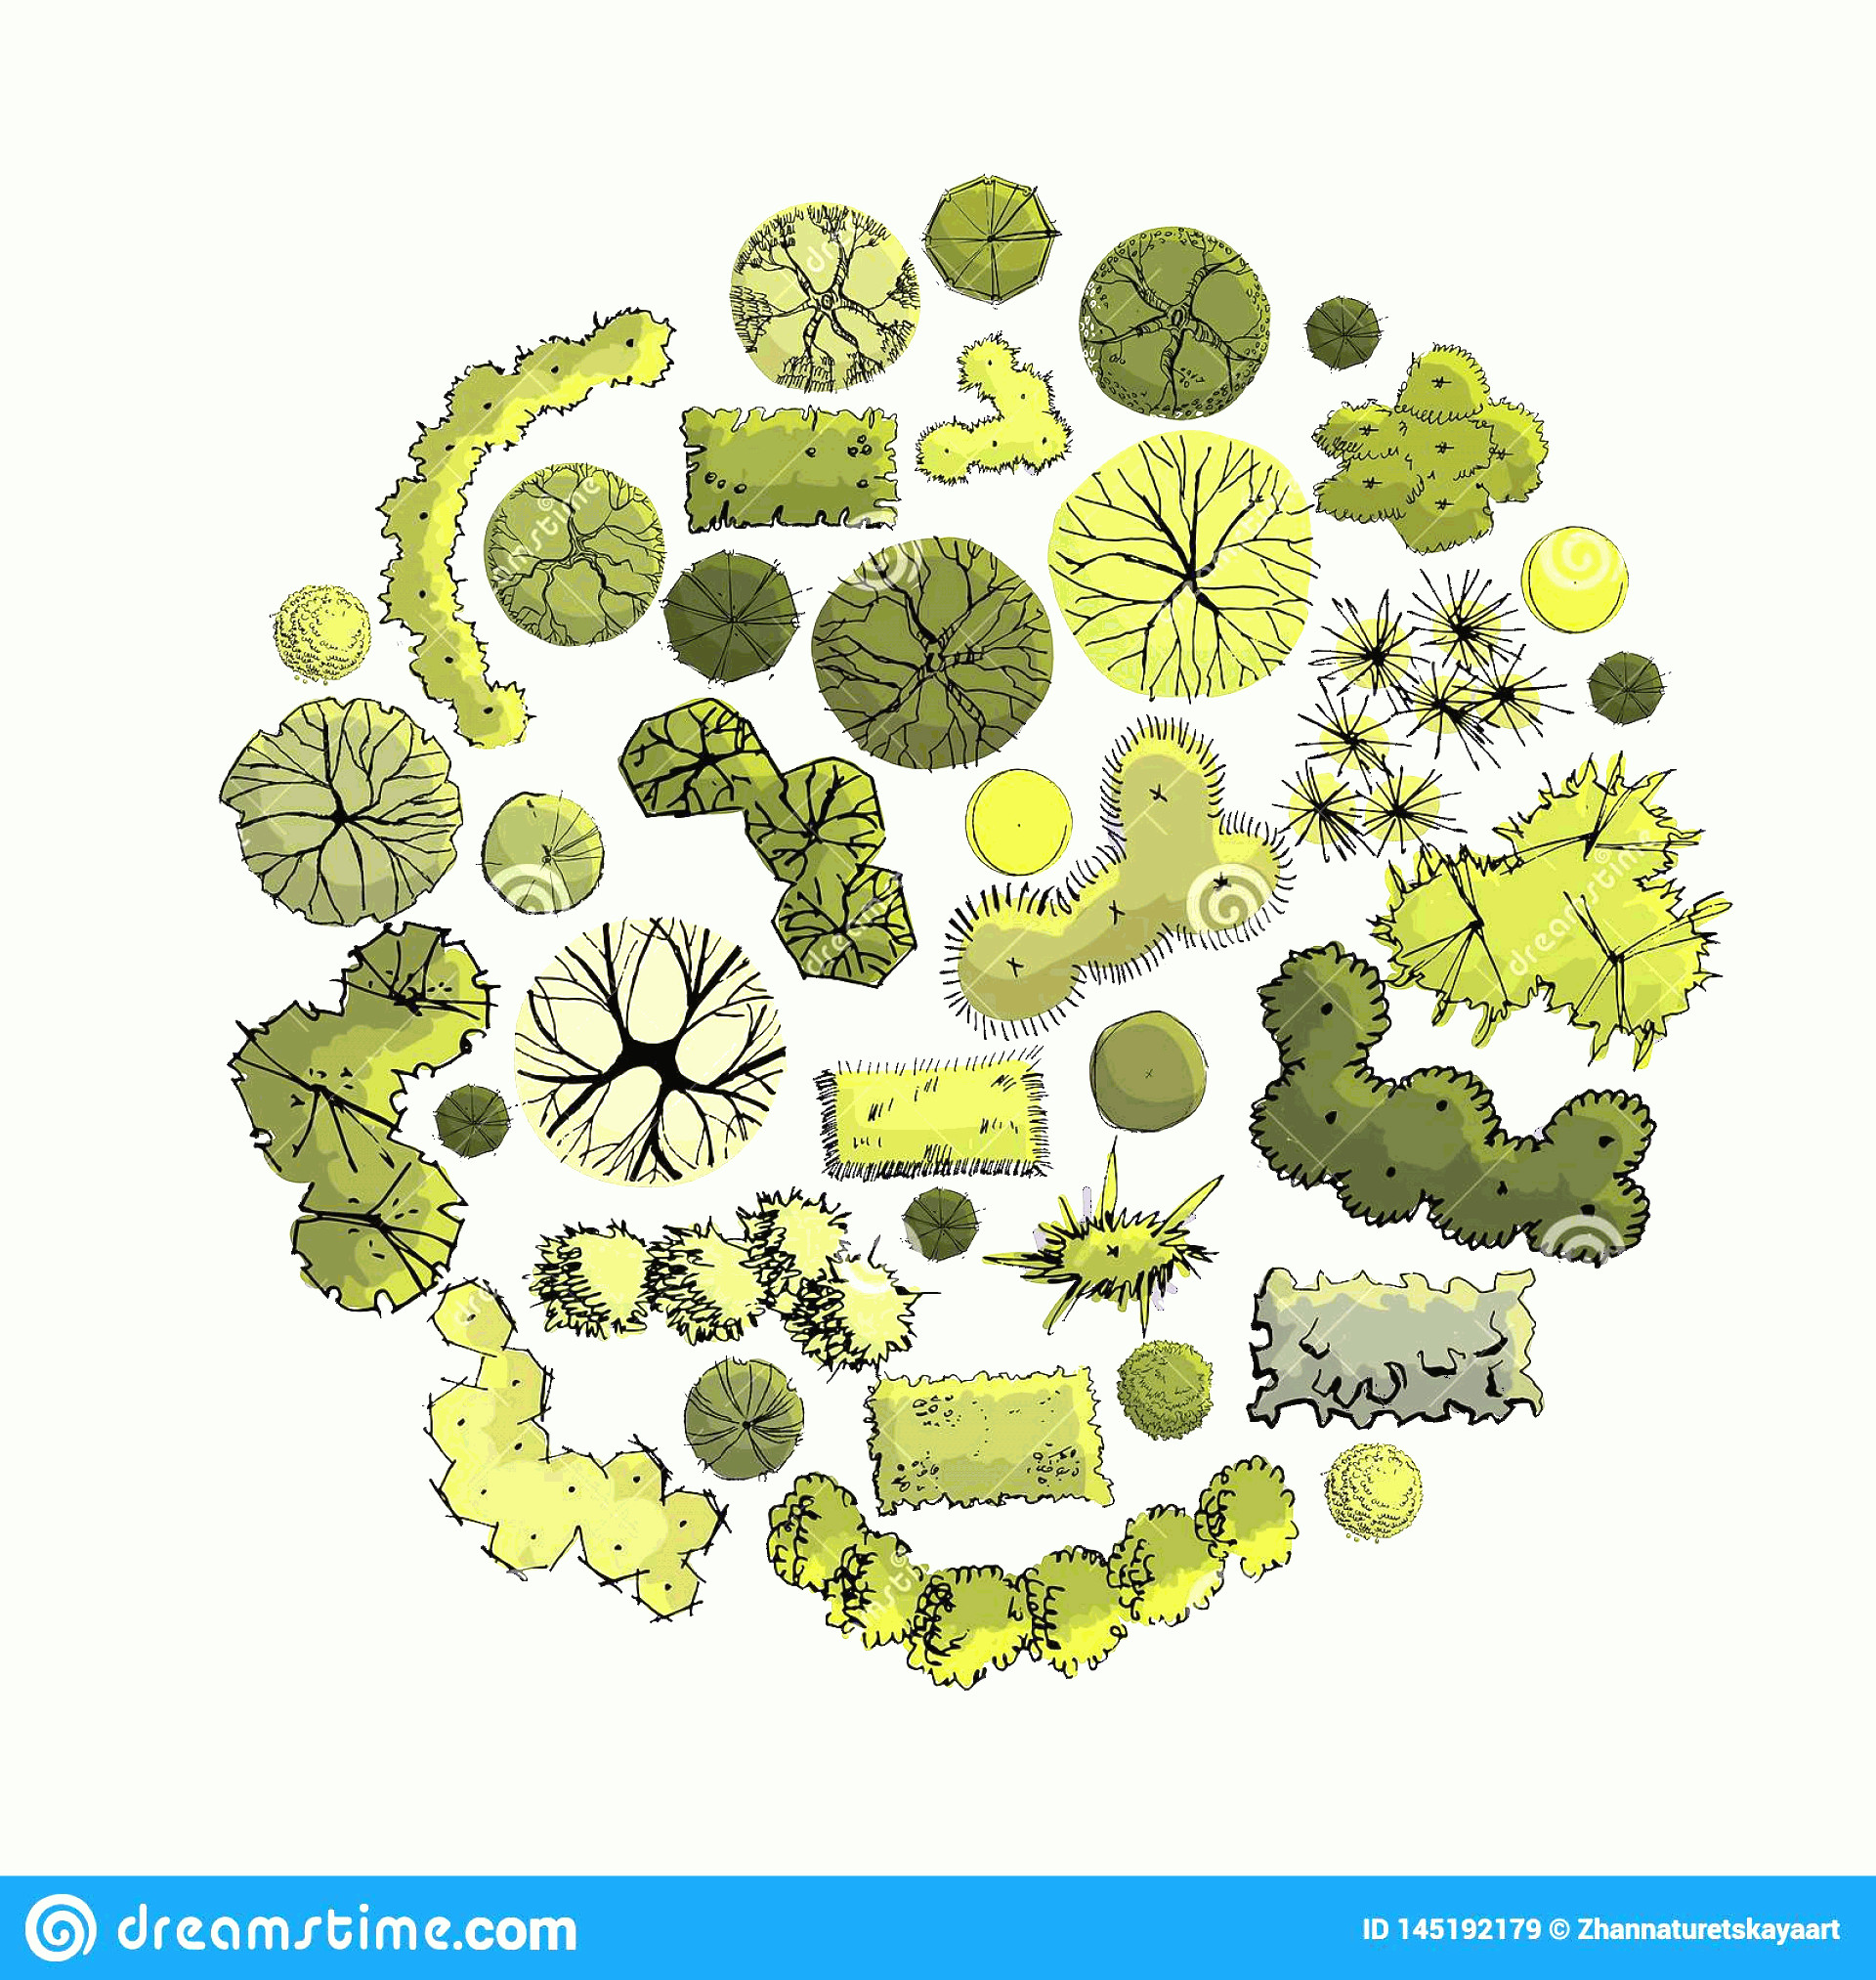 Vector Tree Symbols Plan: Circle Composition Symbols Trees Shrubs Plan View Whithout Shadow Hand Drawn Ink Colored Sketch Isolated Image